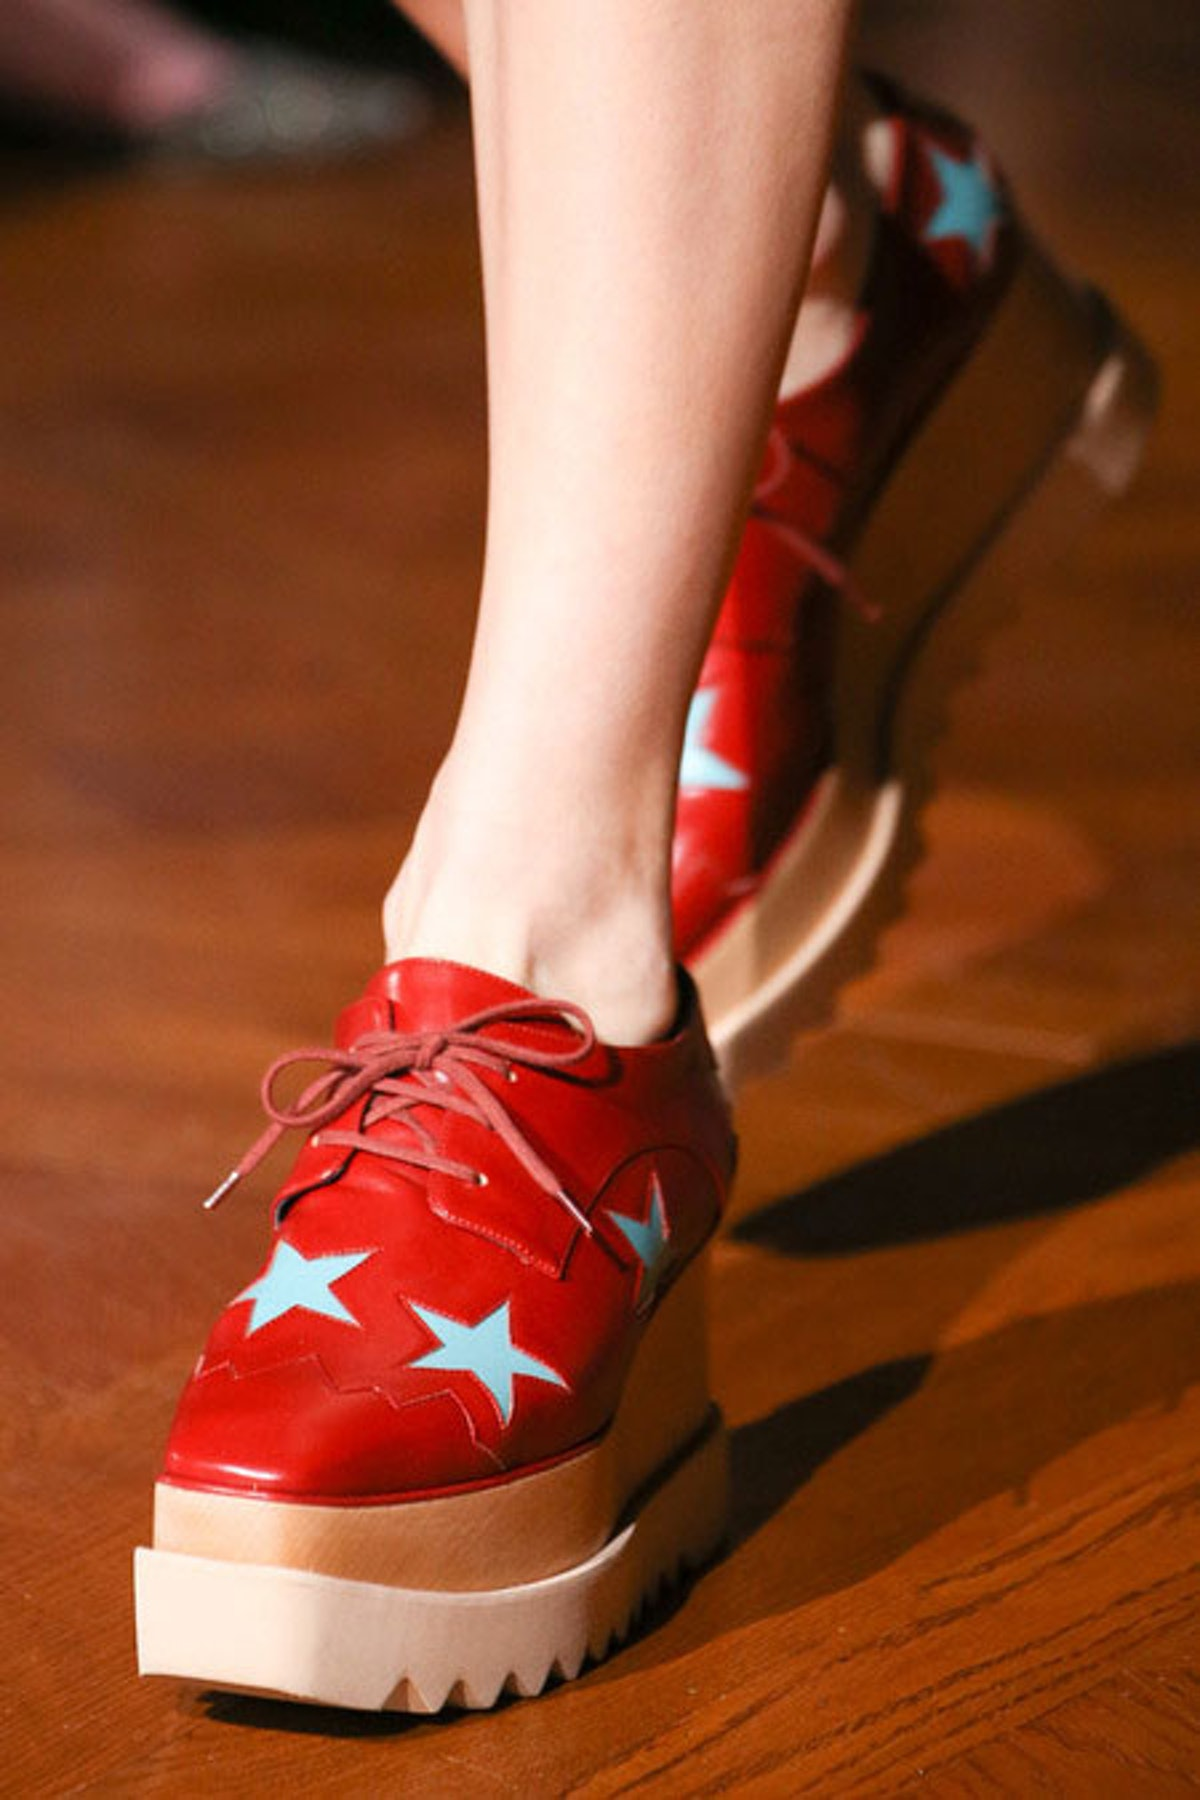 Stella McCartney shoes from the fall 2014 collection